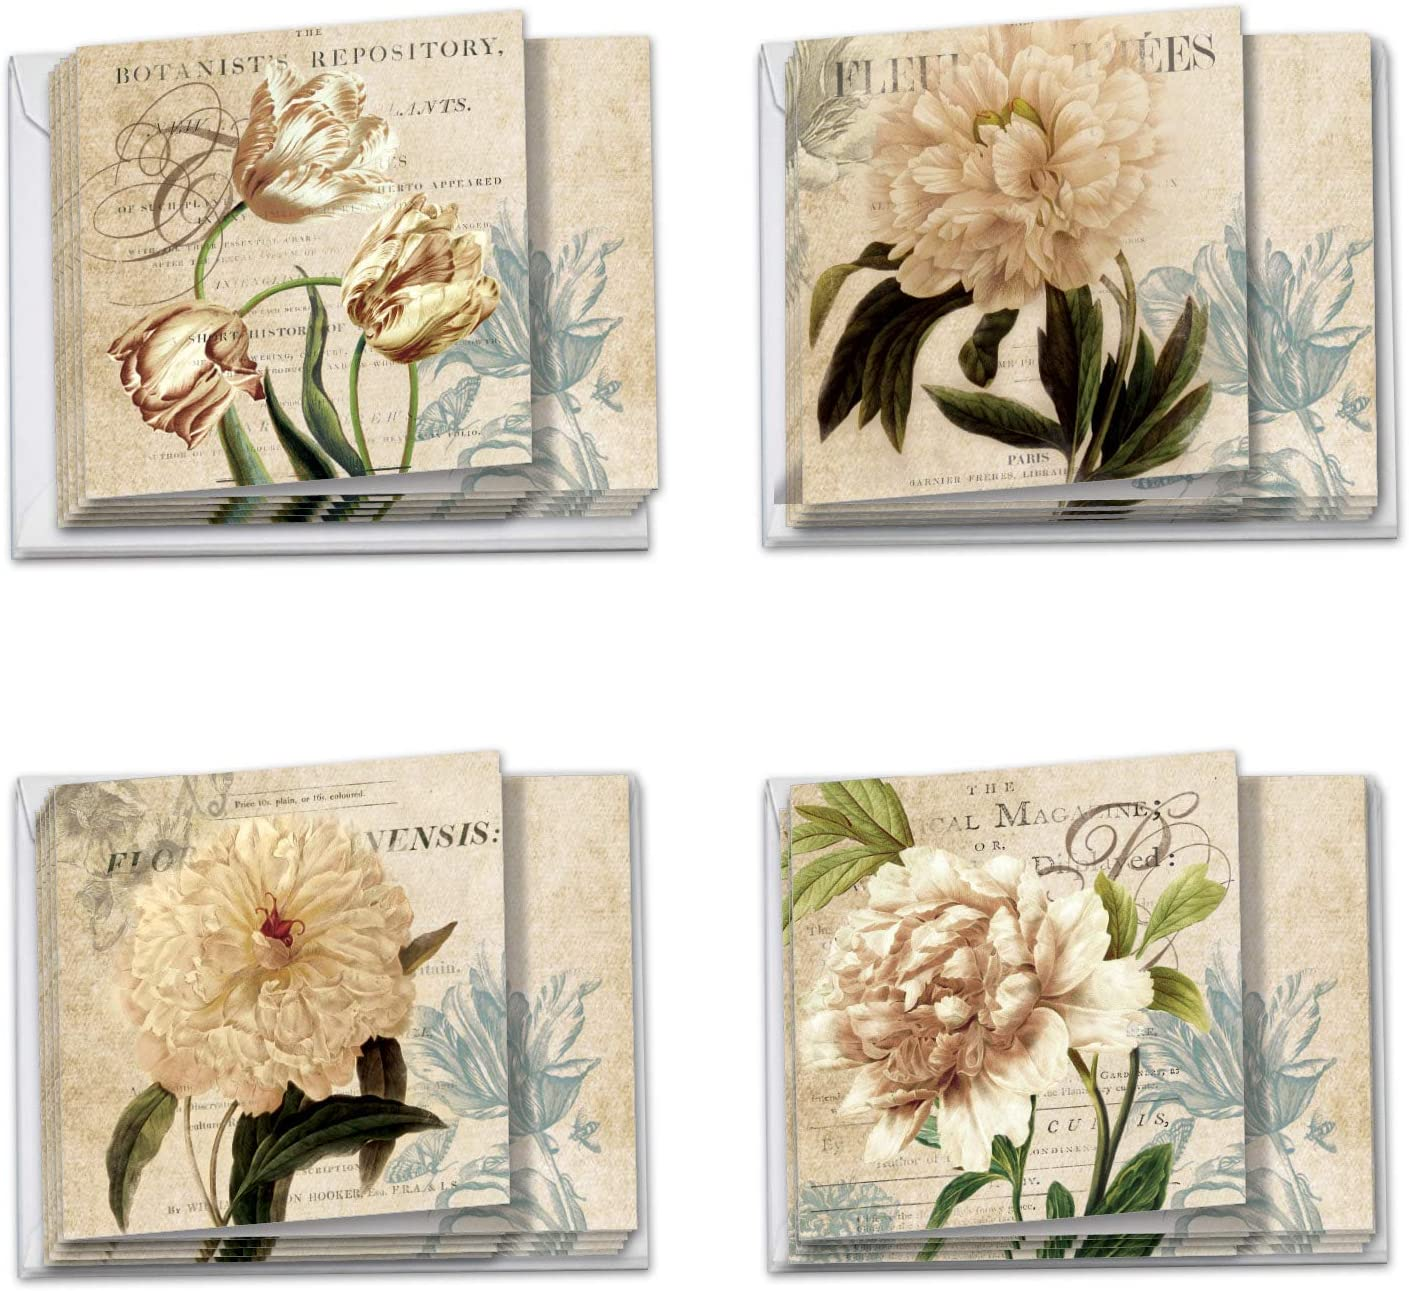 Painted Peonies - 12 Vintage Thank You Cards with Envelopes (4 x 5.12 Inch) - Pretty Floral Appreciation, Gratitude Note Cards - Assorted Flower Notecard Set (3 Each, 4 Designs) MQ4605TYG-B3x4